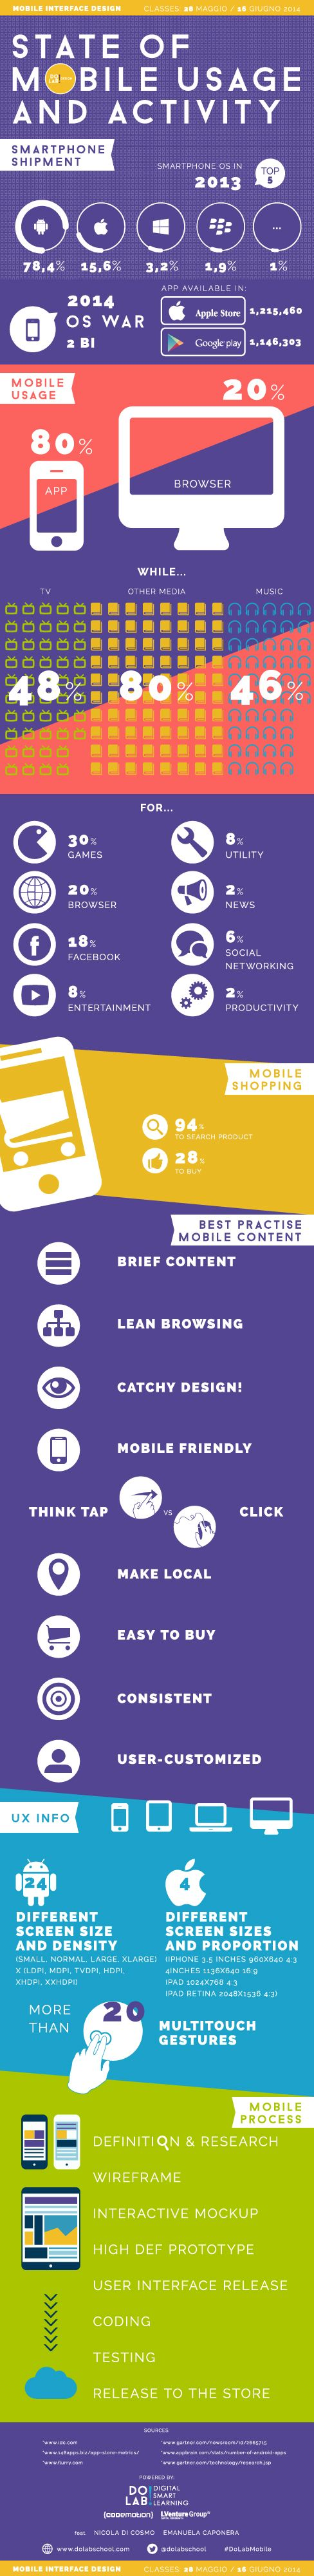 State Of Mobile Usage And Activity Dolab School Infographic Marketing Digital Marketing Infographics Infographic